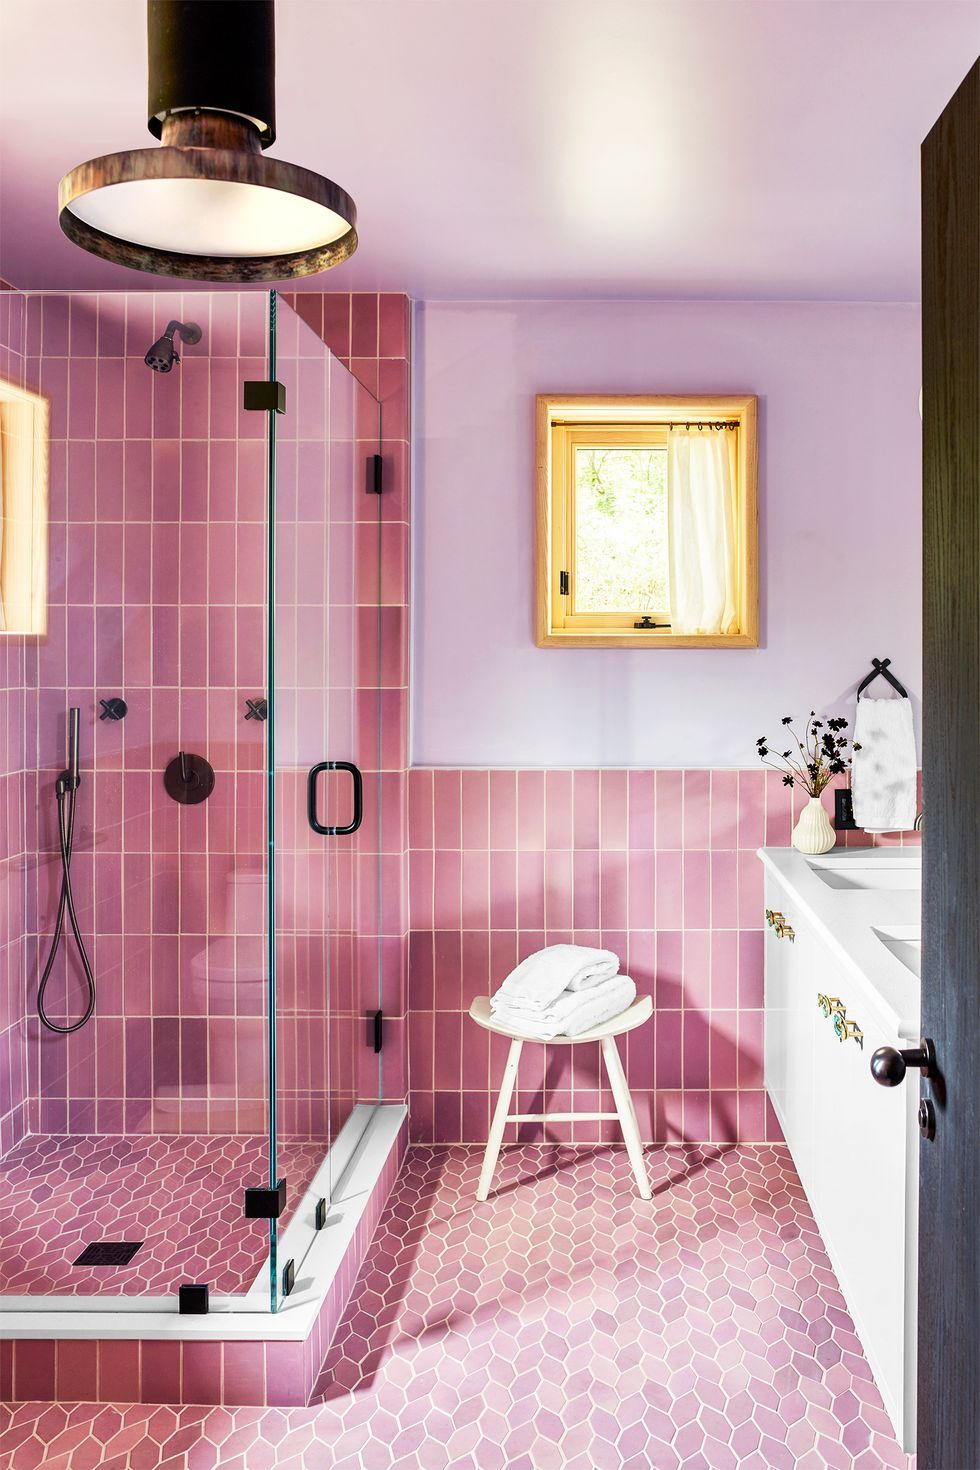 10 Best Bathroom Designs - Photos of Beautiful Bathroom Ideas to Try